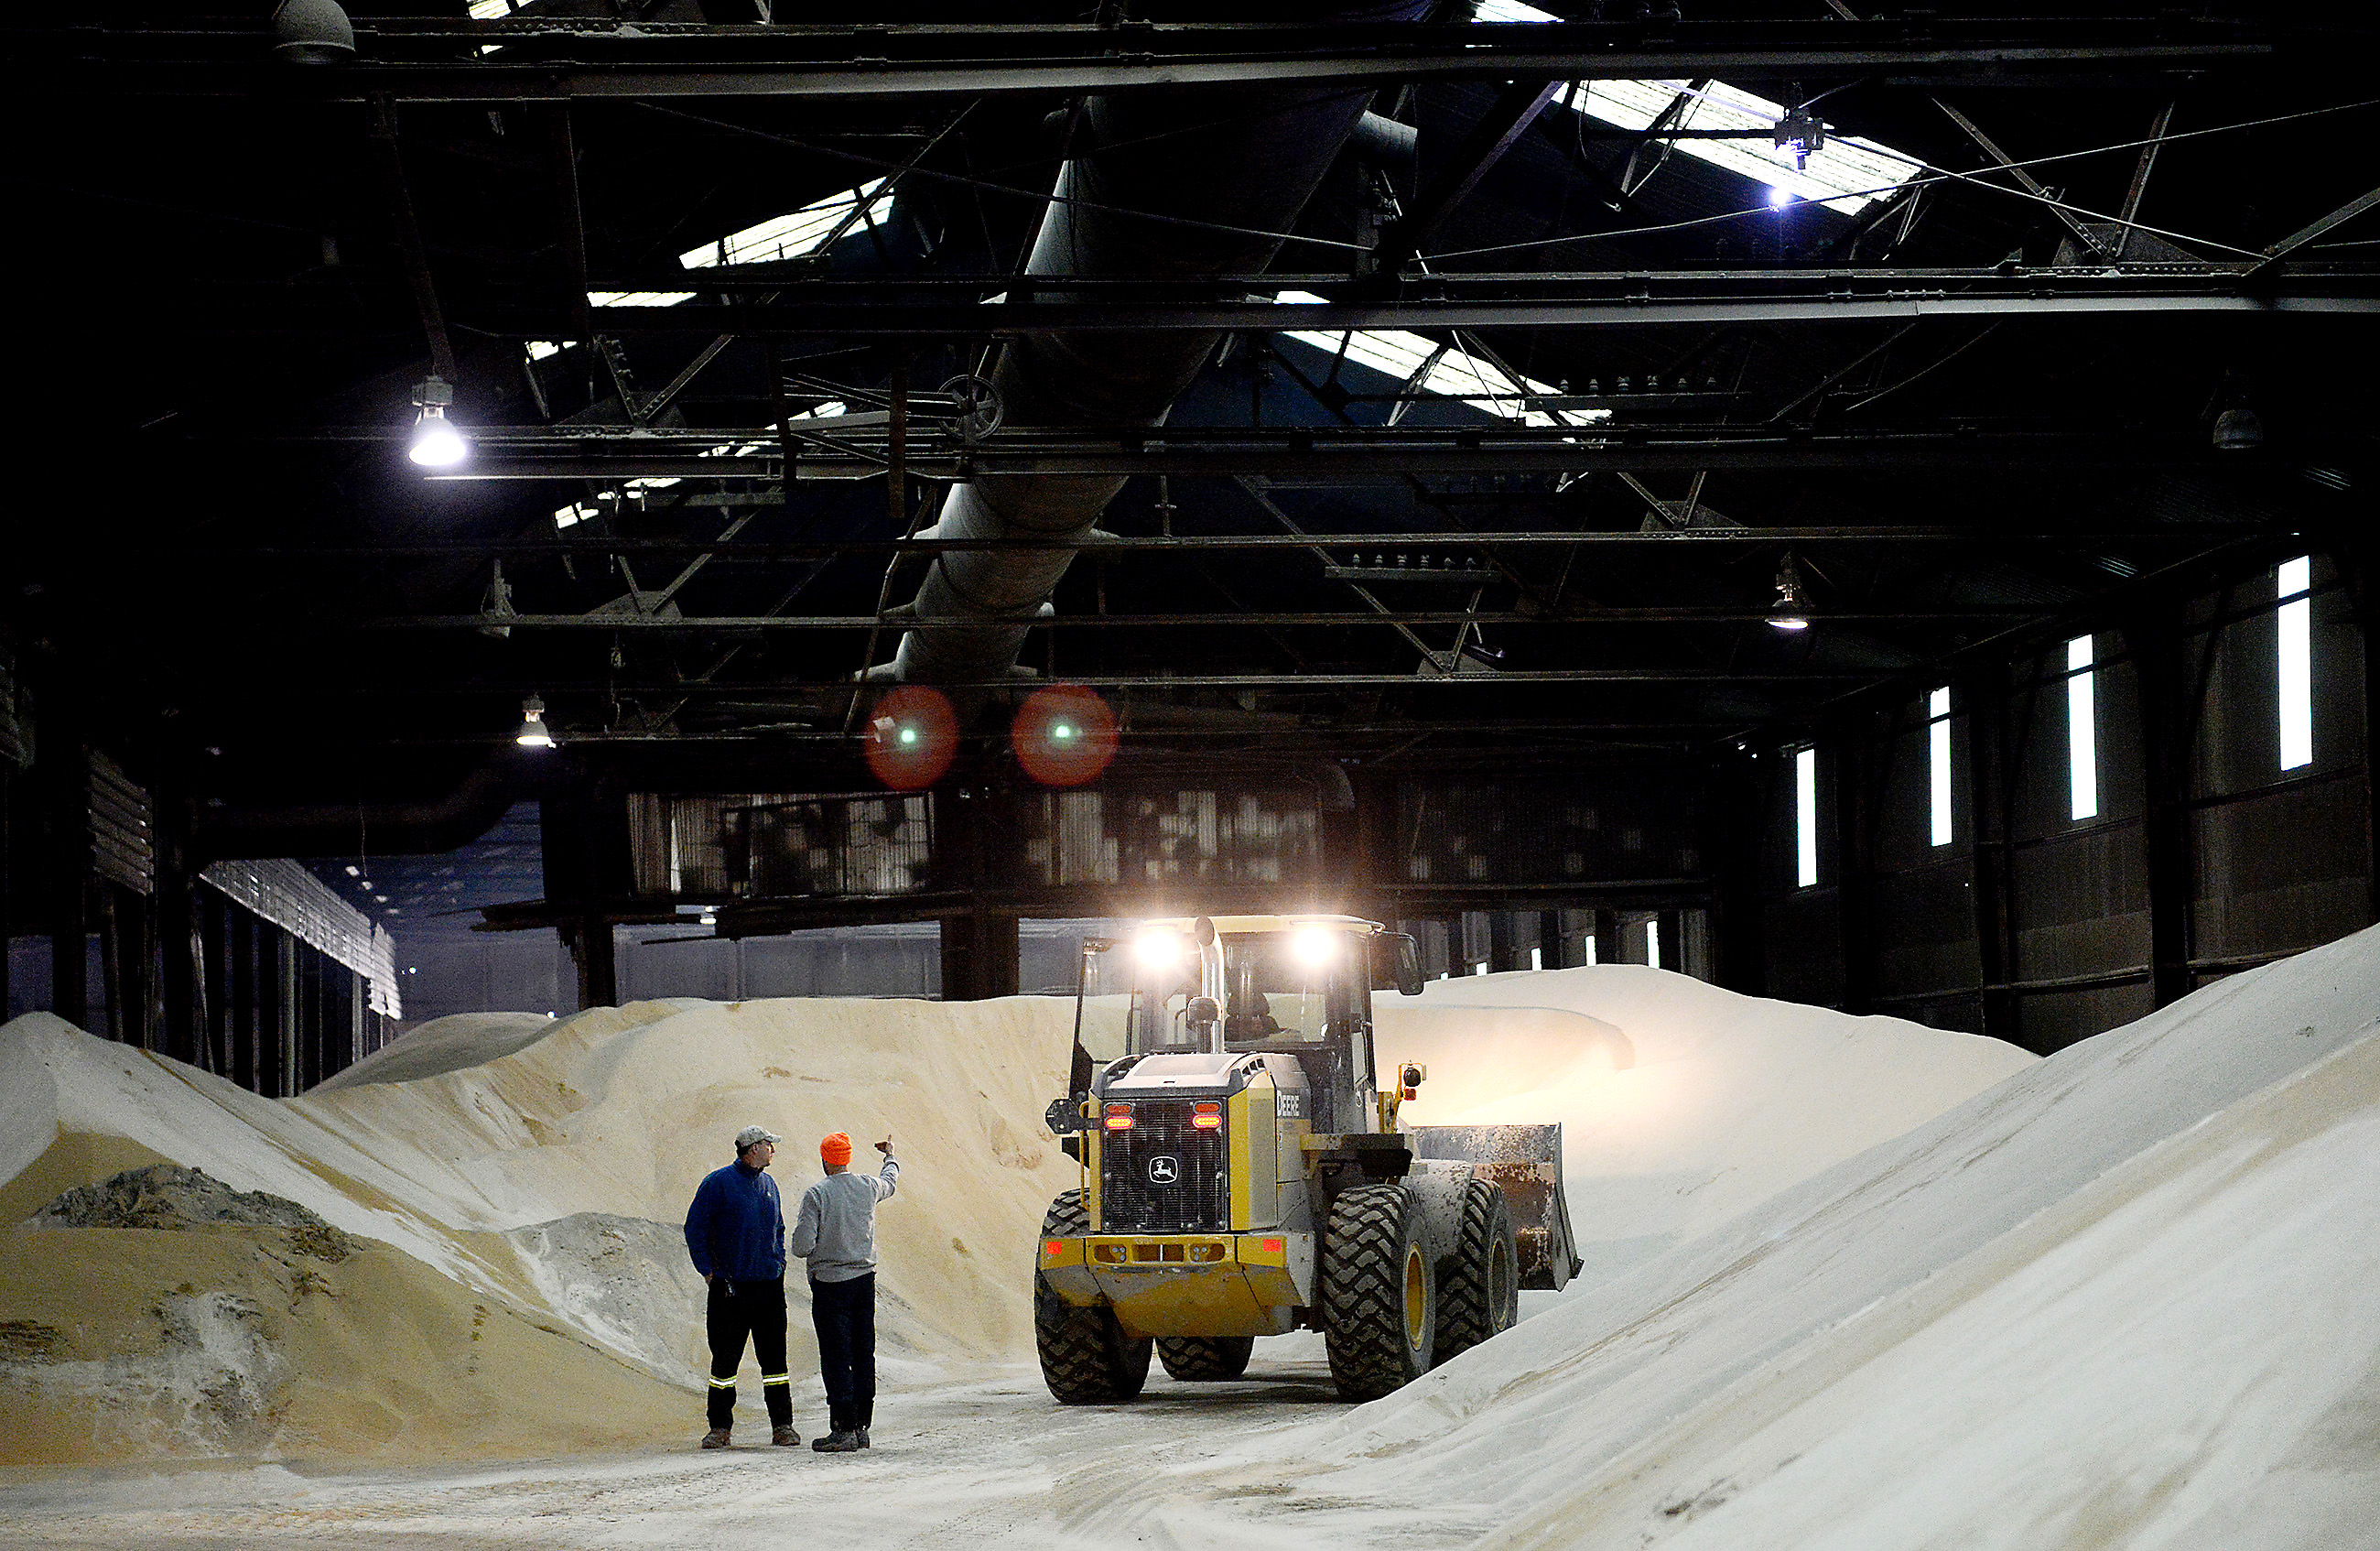 20150320MWHmrieBiz10-9 Michael Henninger/Post-Gazette 20150320 mrie Biz 03/20/2015 Employees survey and move frack sand stored in warehouse facilities at McKees Rocks Industrial Enterprises (MRIE). Two more 30,000-square-foot buildings are slated to open this year to store frack sand, according to Jim Lind, an owner at MRIE.